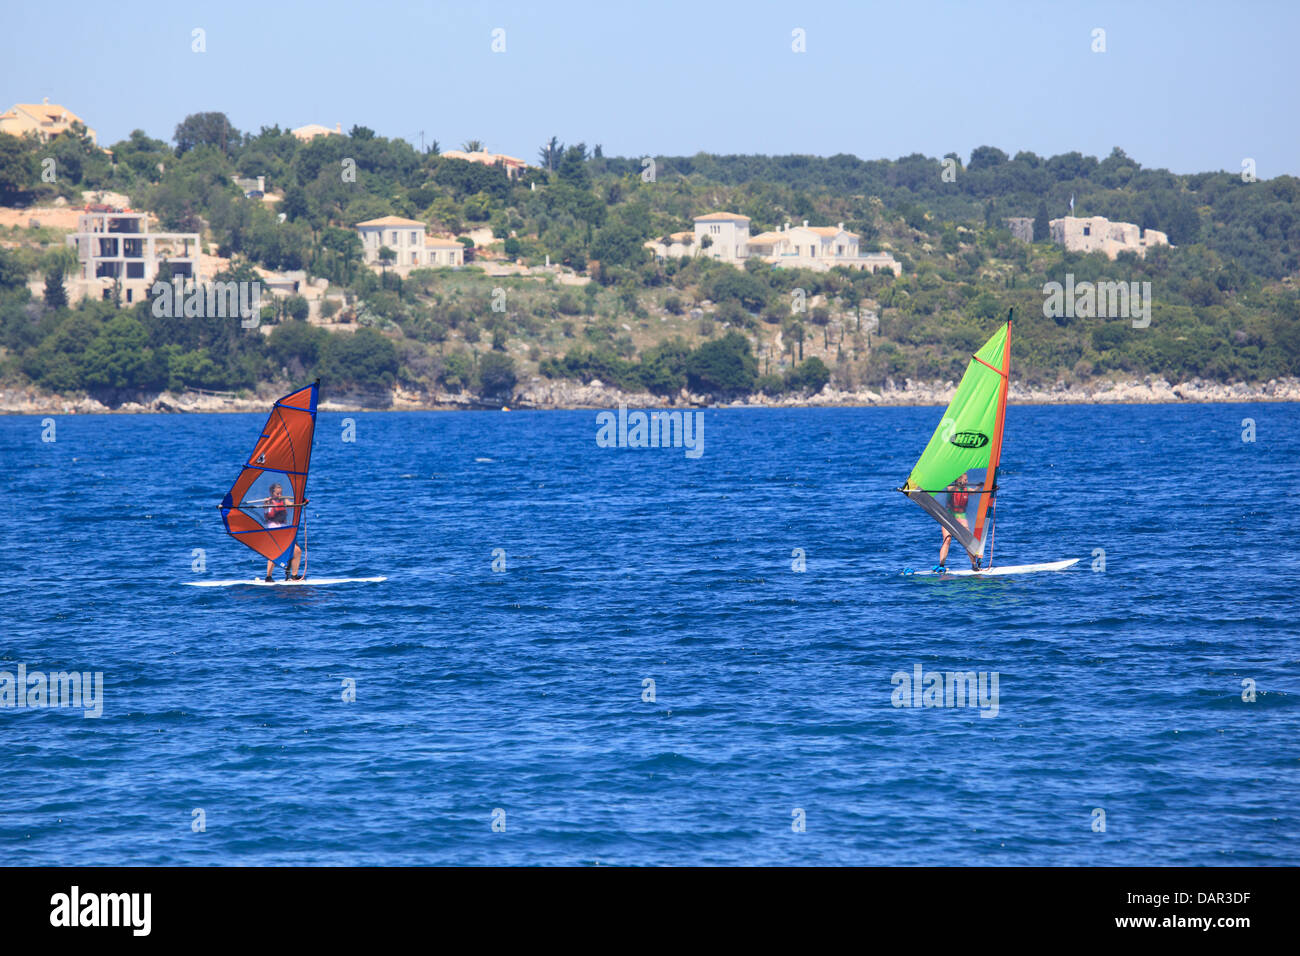 Two young women wind-surfing in Avlaki bay - Stock Image